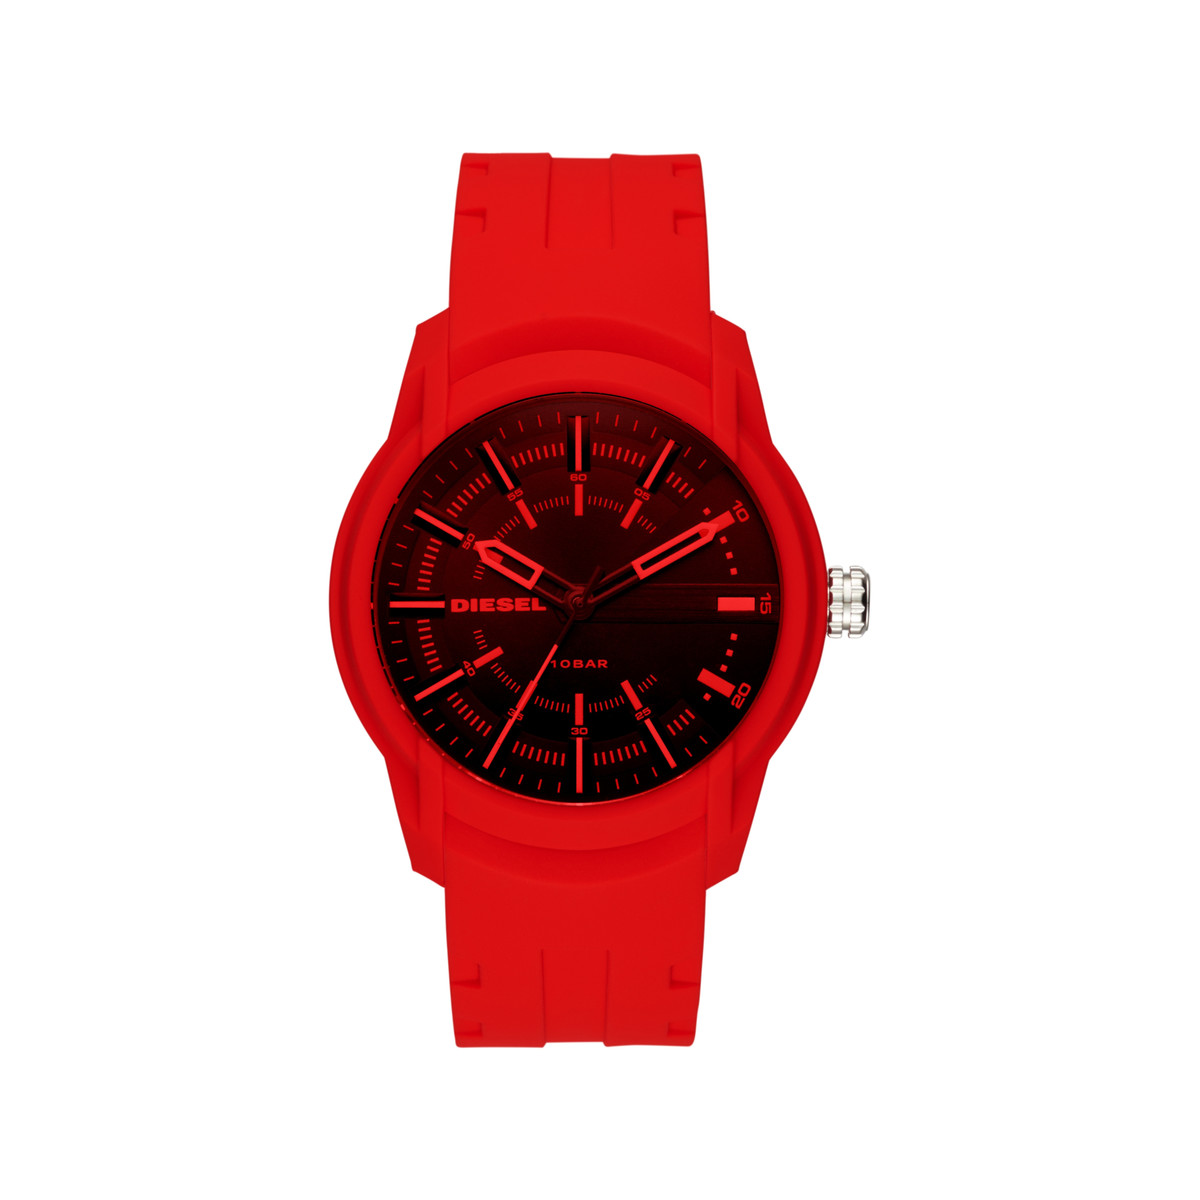 Montre Diesel homme silicone rouge